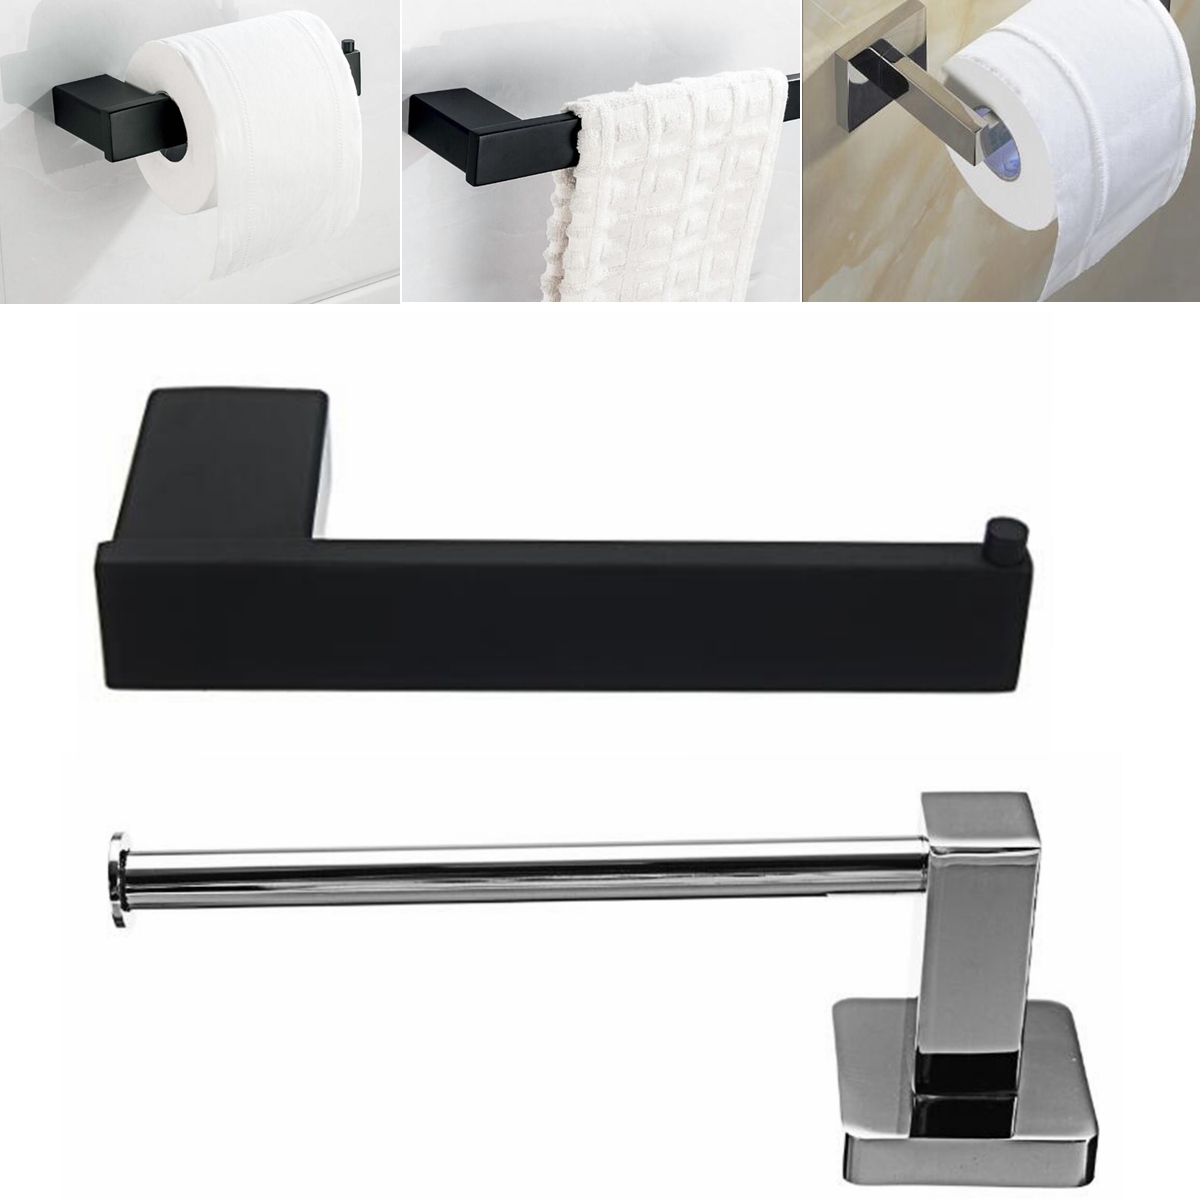 Chrome Stainless Steel Bathroom Toilet Paper Roll Holder Wall Rack Towel Bracket